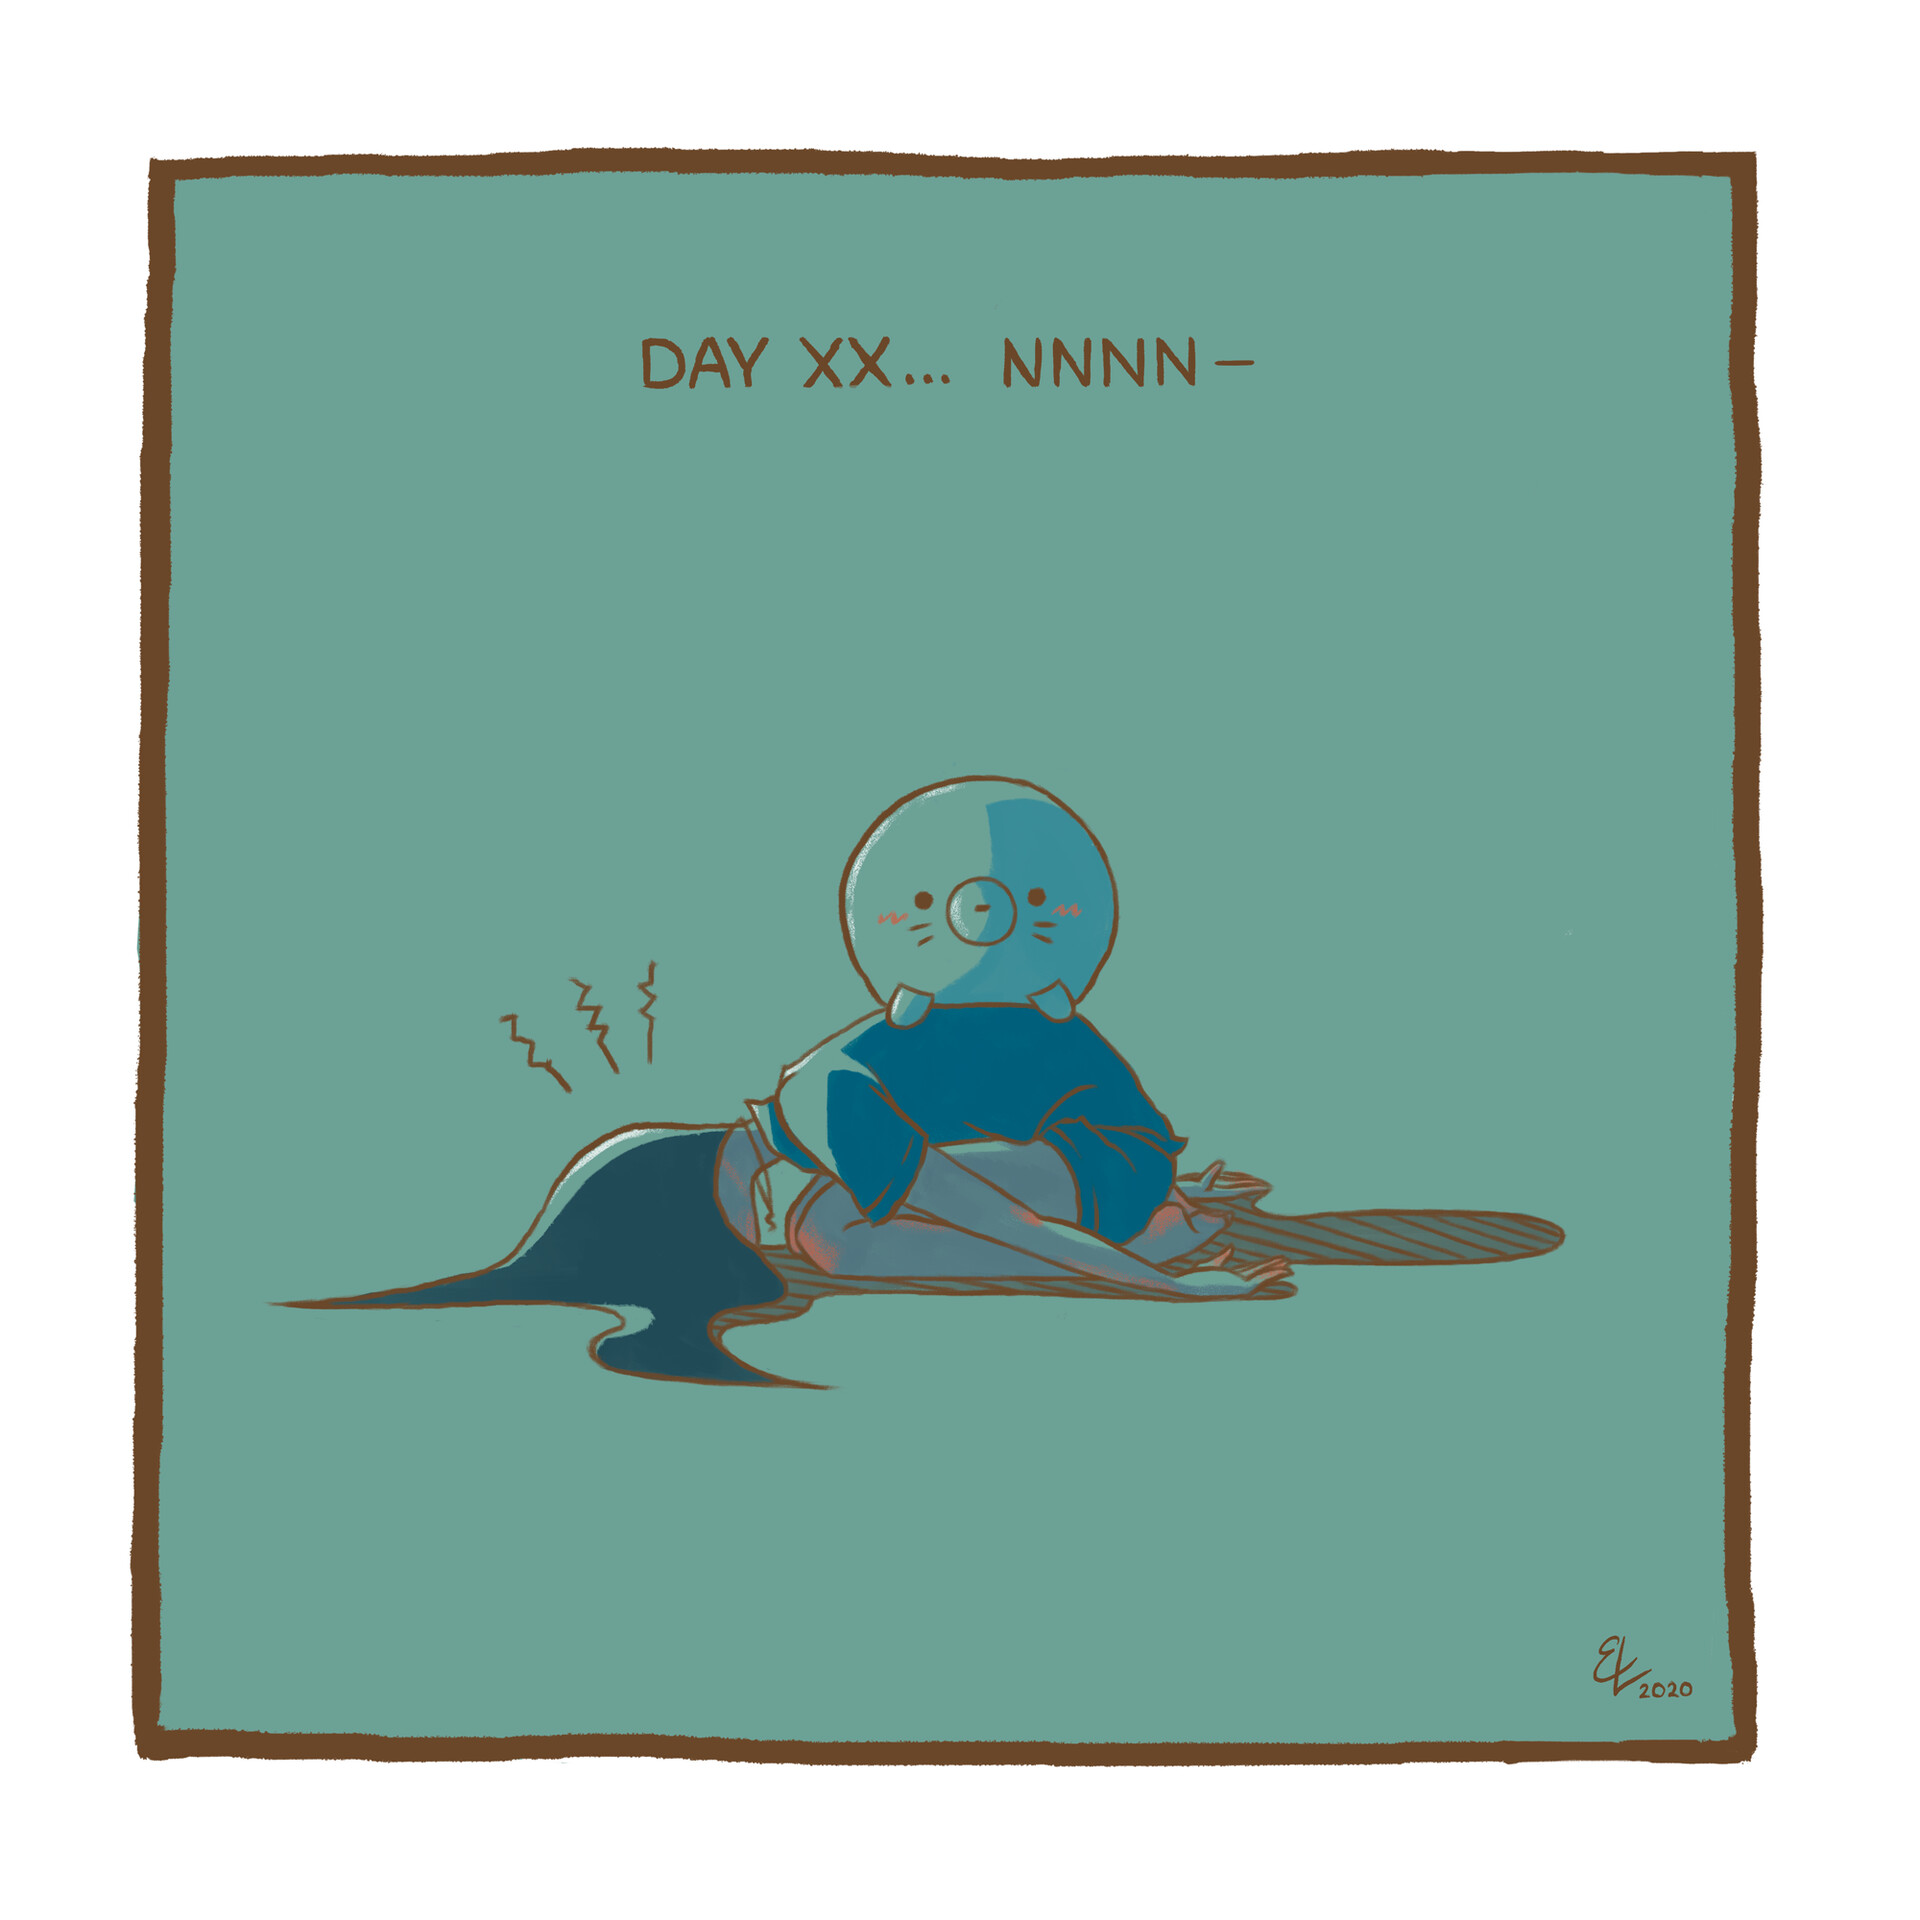 07. Efficiently stretching and falling into frustrated despair with the sealion plush my mom gave me...